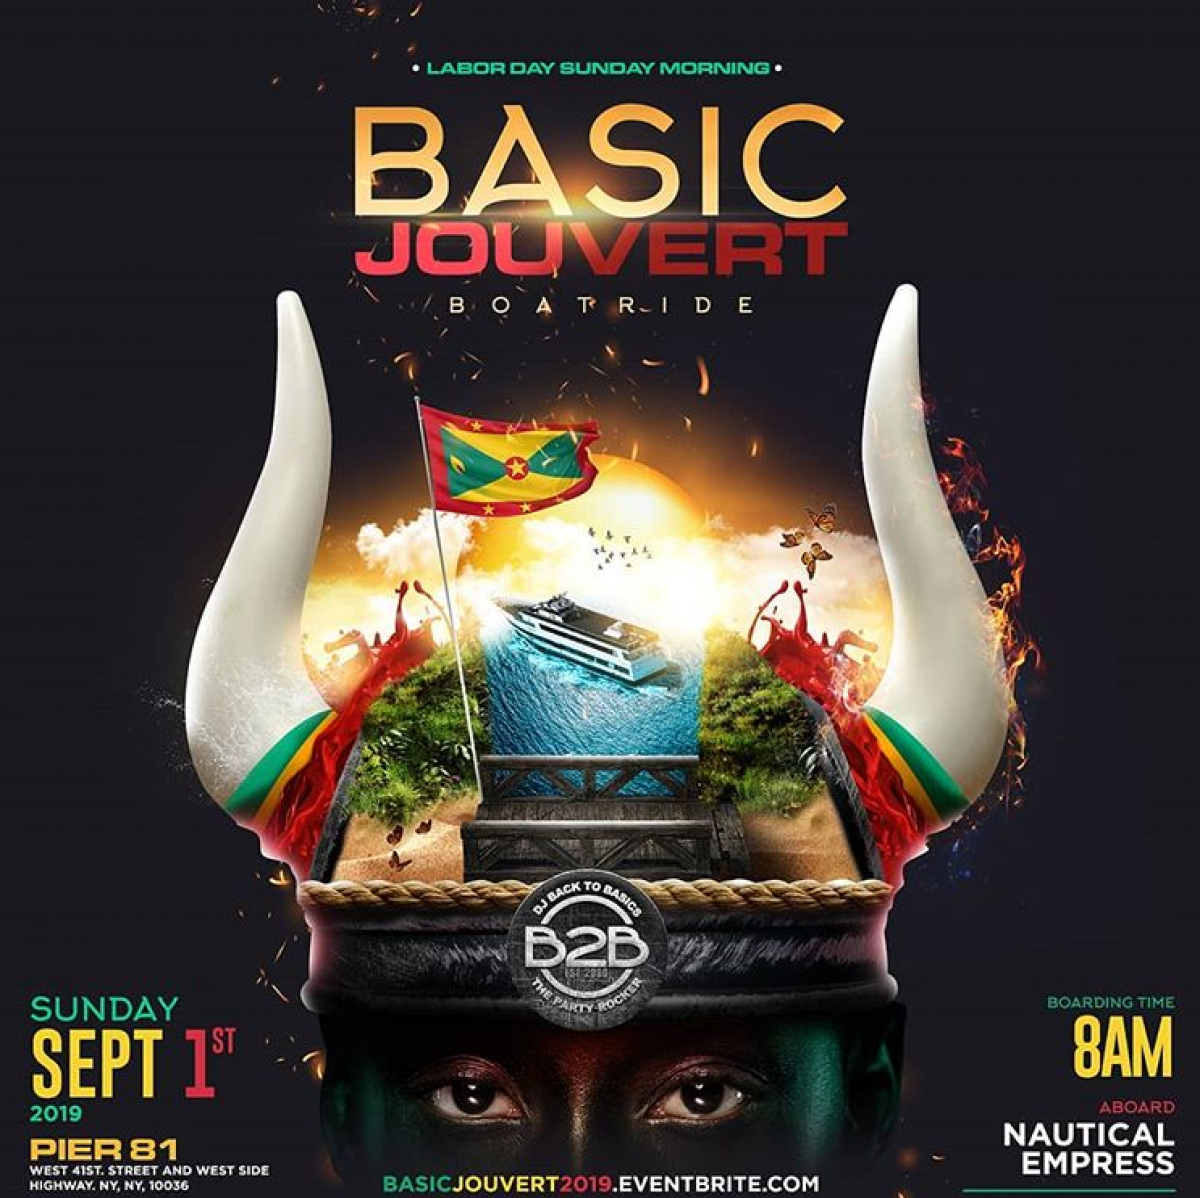 B2B Jouvert Boatride flyer or graphic.